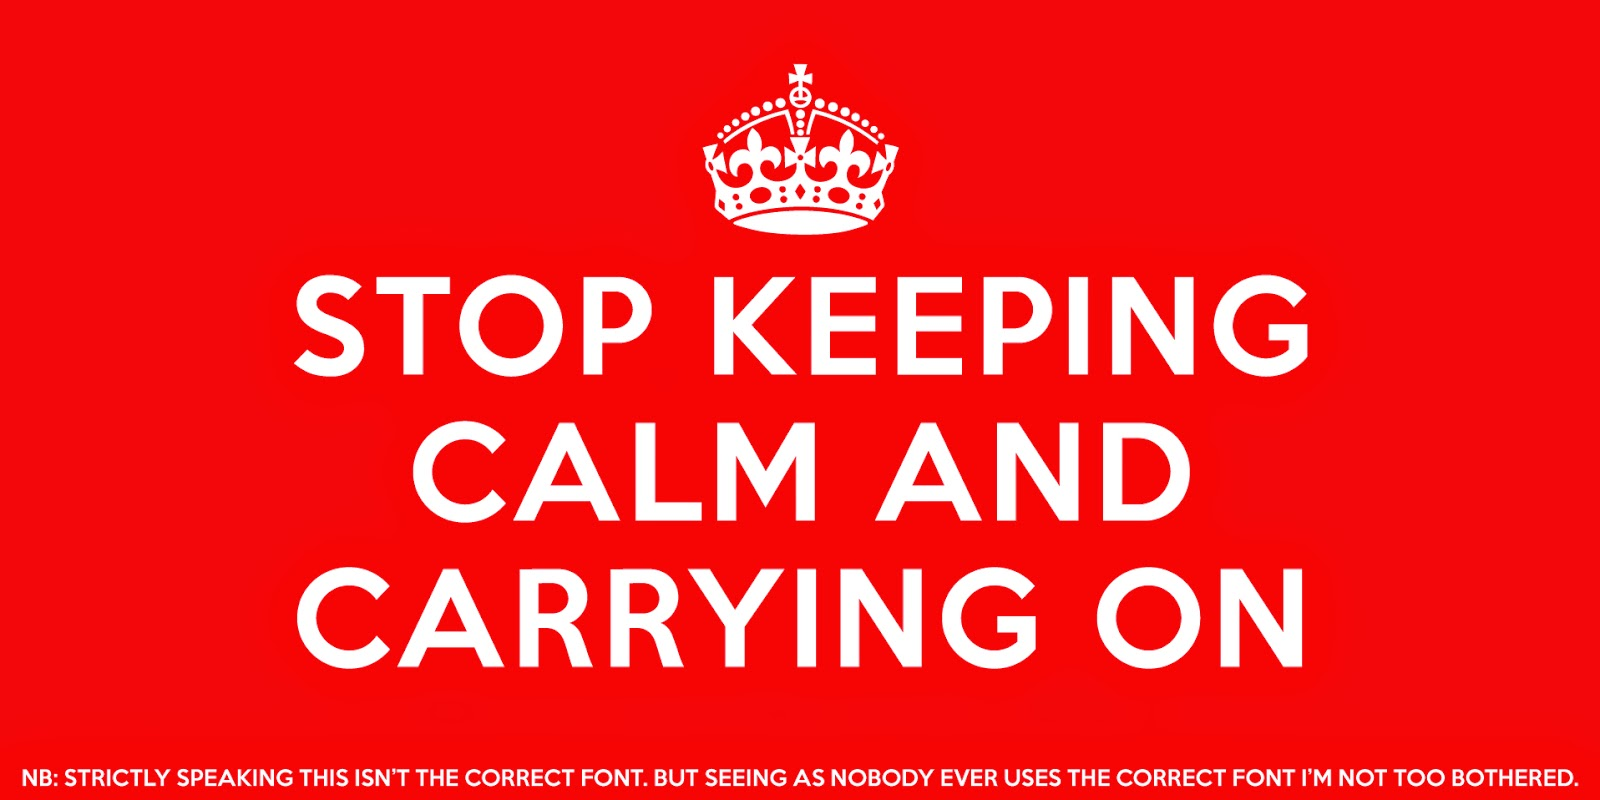 Stop keeping calm and carrying on